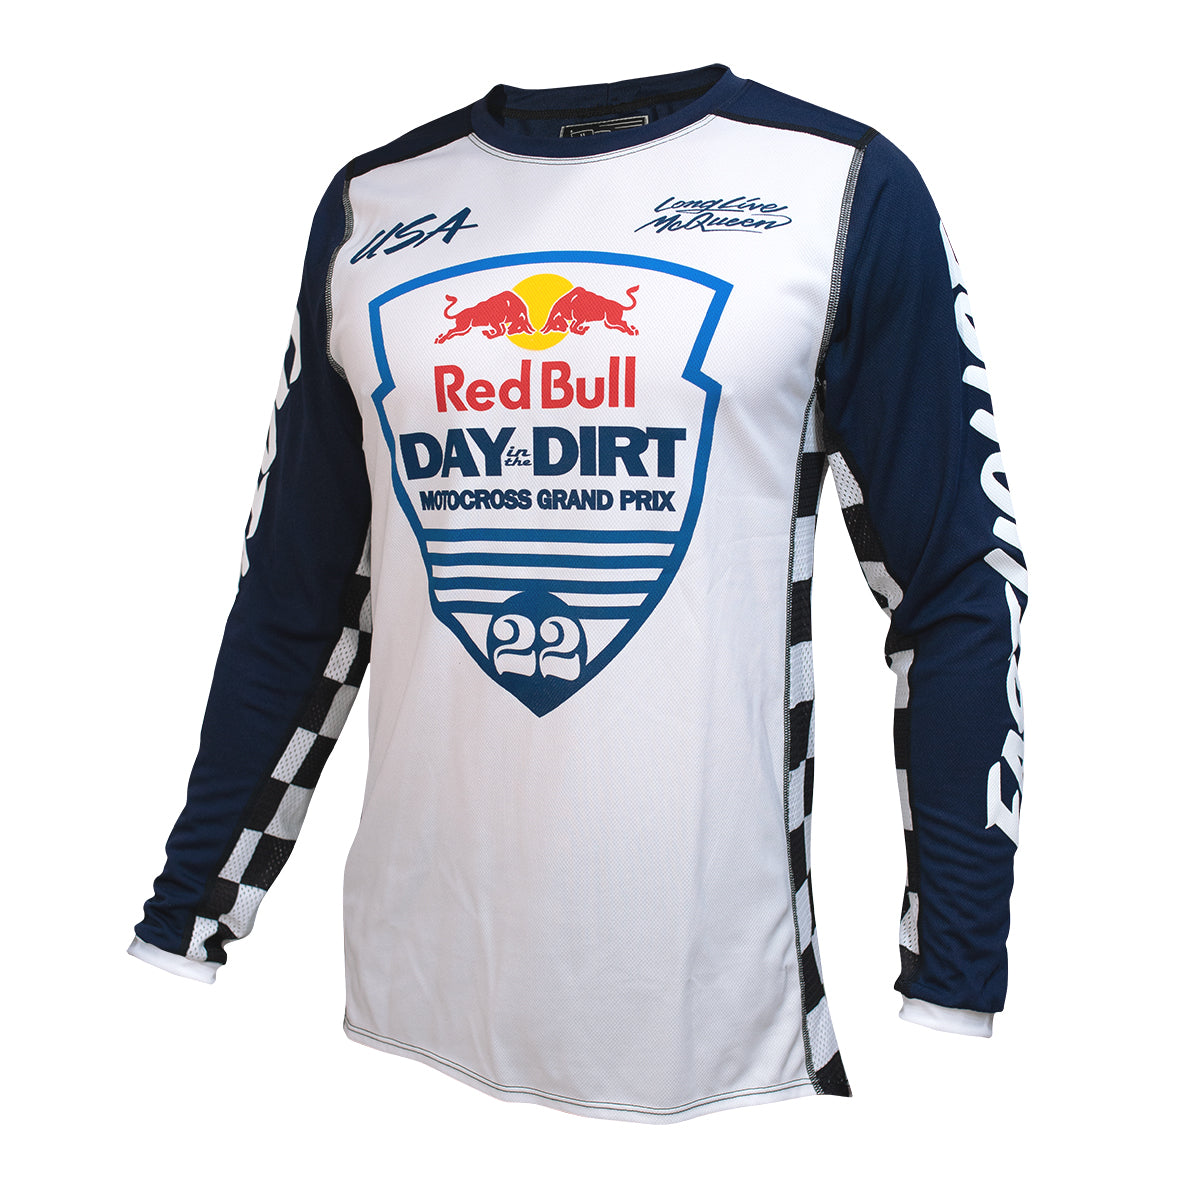 Fasthouse - Red Bull Day in the Dirt 22 Jersey - White/Navy